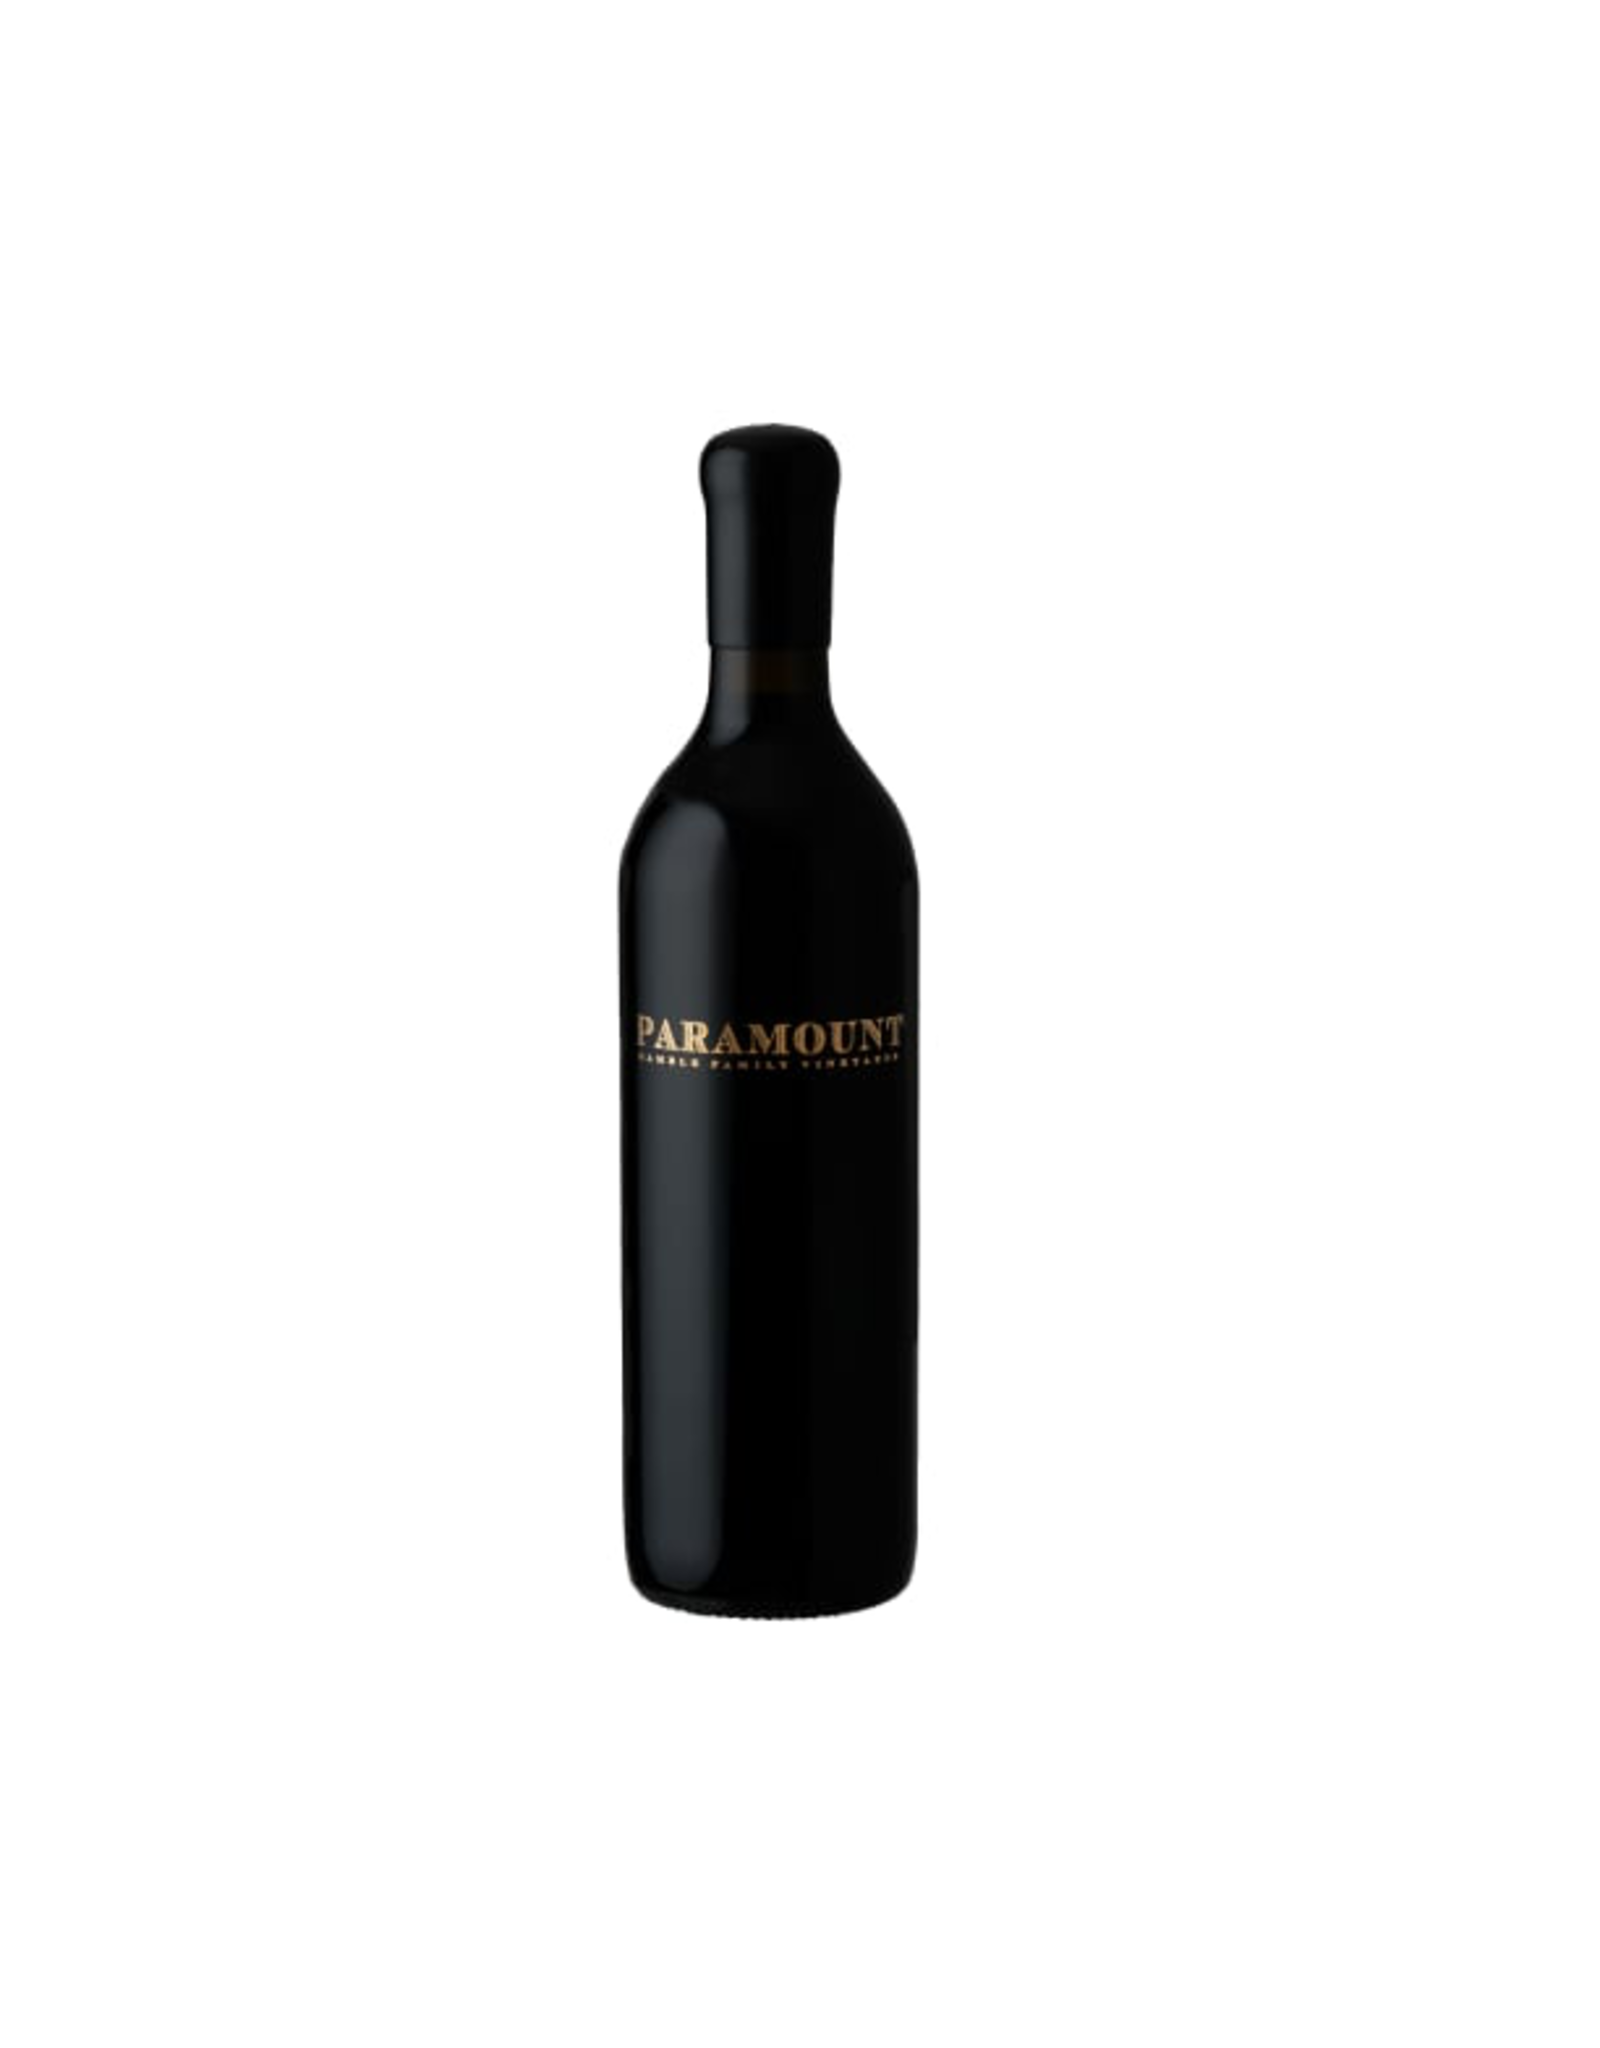 Gamble Family Vineyards Paramount Proprietary Red 2014